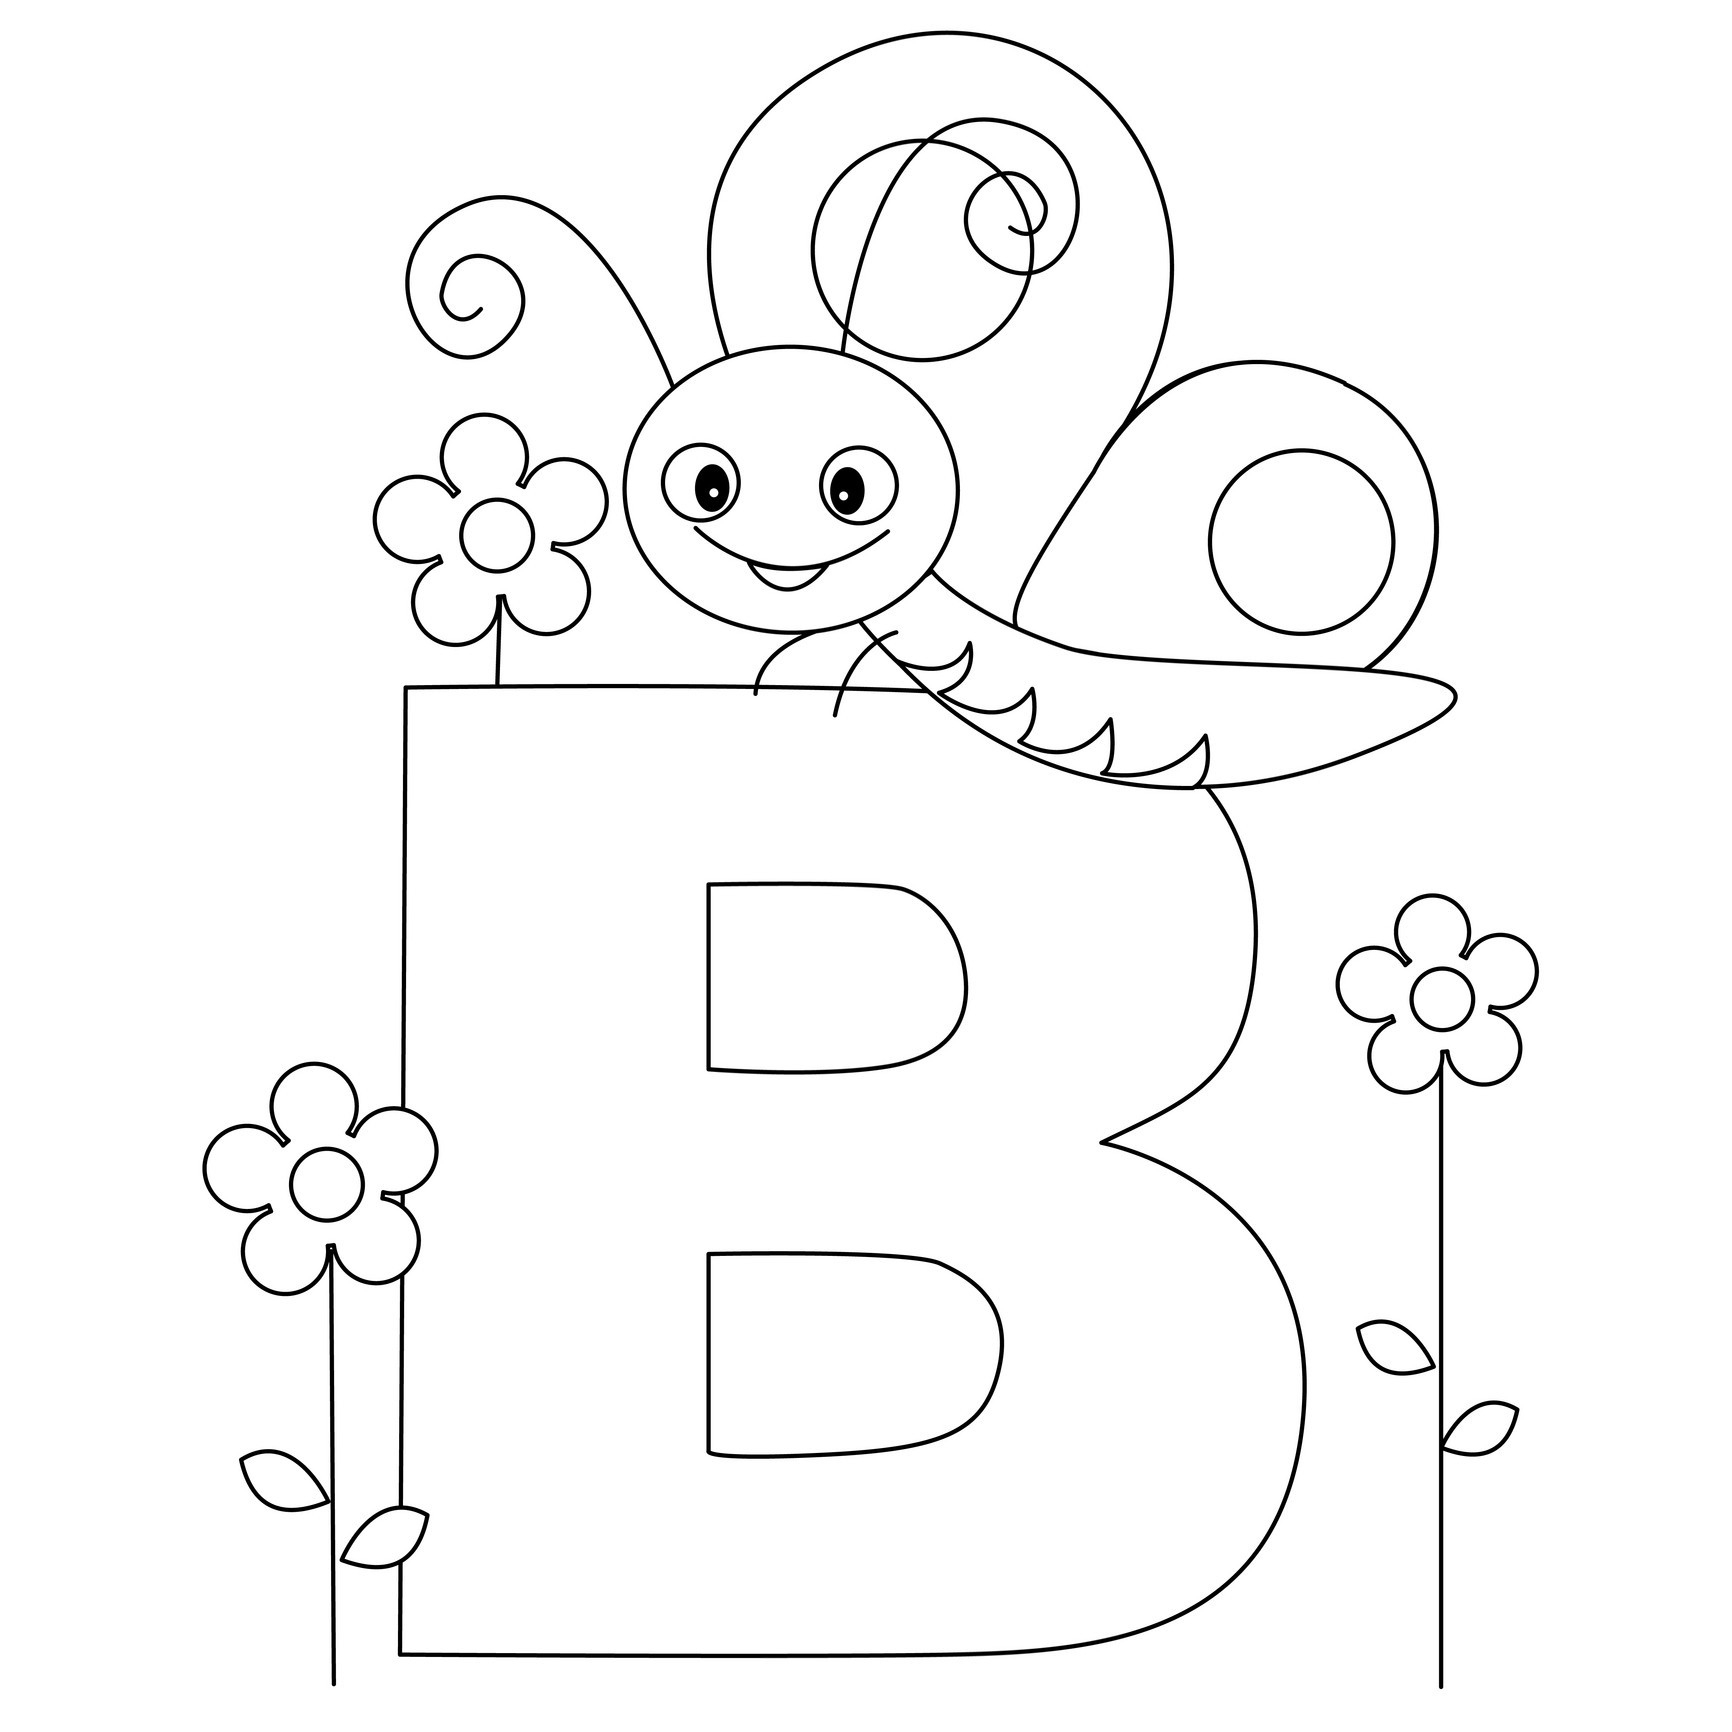 Free Printable Alphabet Coloring Pages For Kids - Best in Alphabet Worksheets Coloring Pages